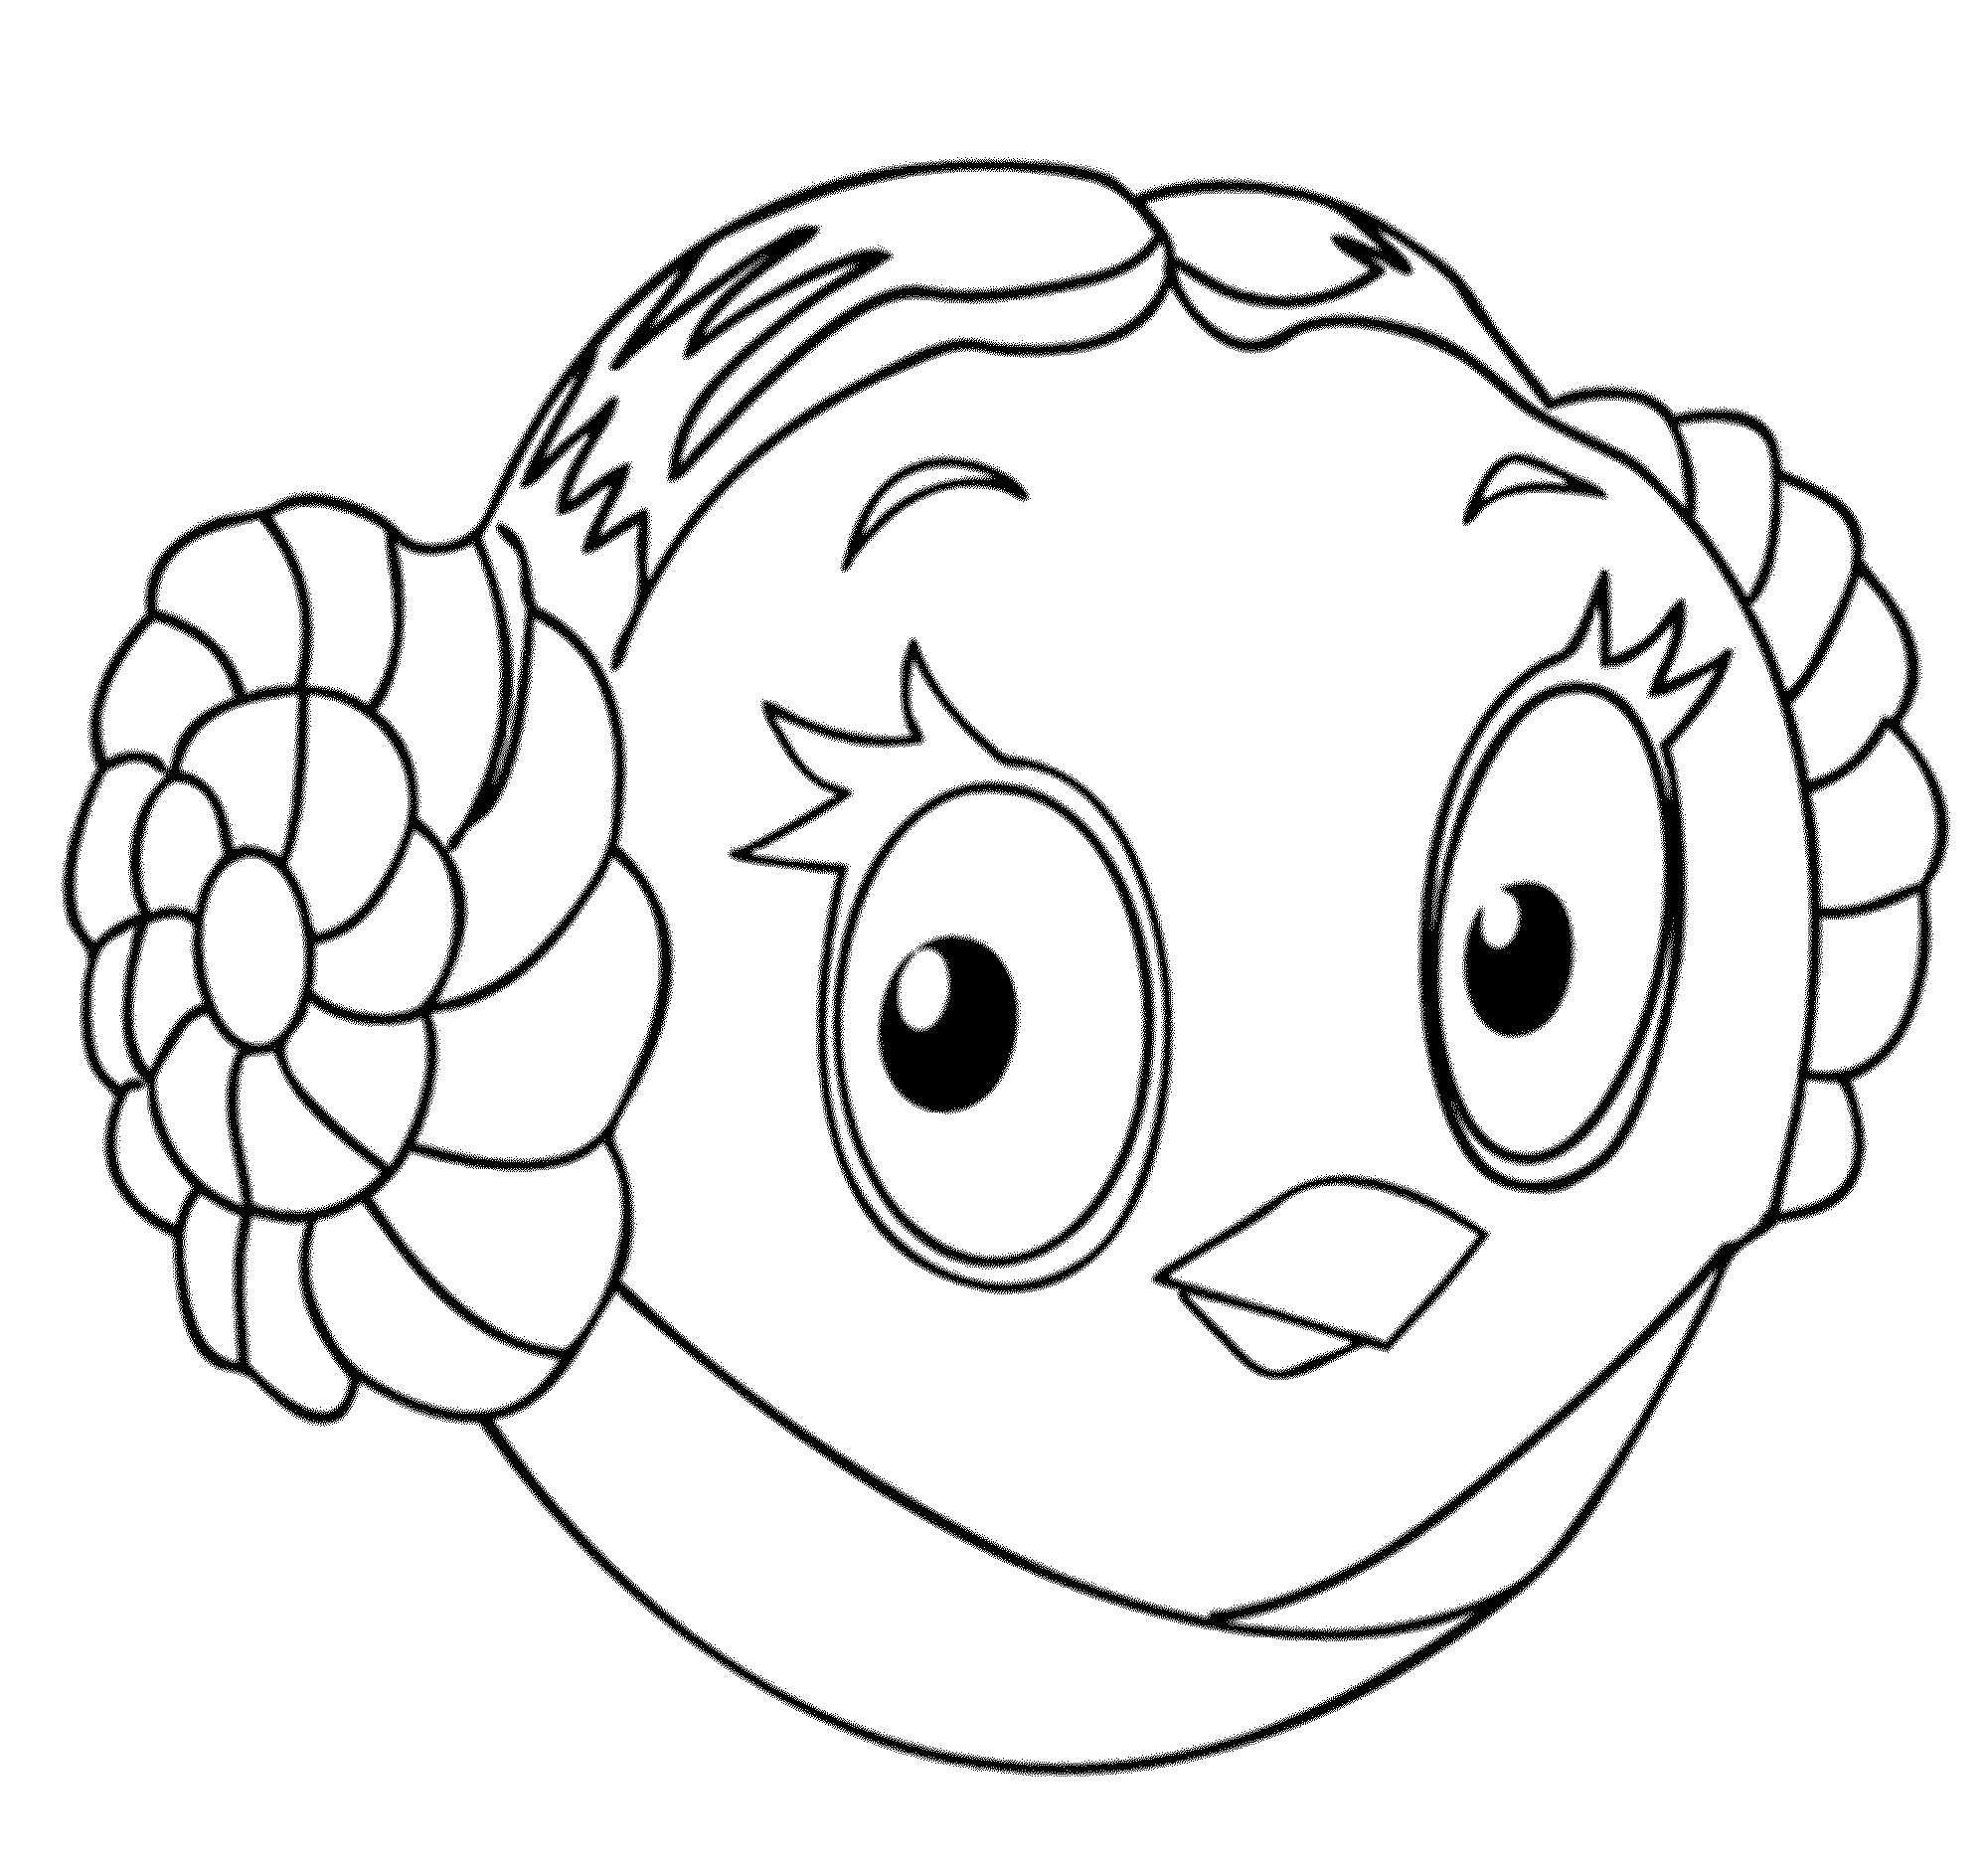 Printable Angry Bird Coloring Pages